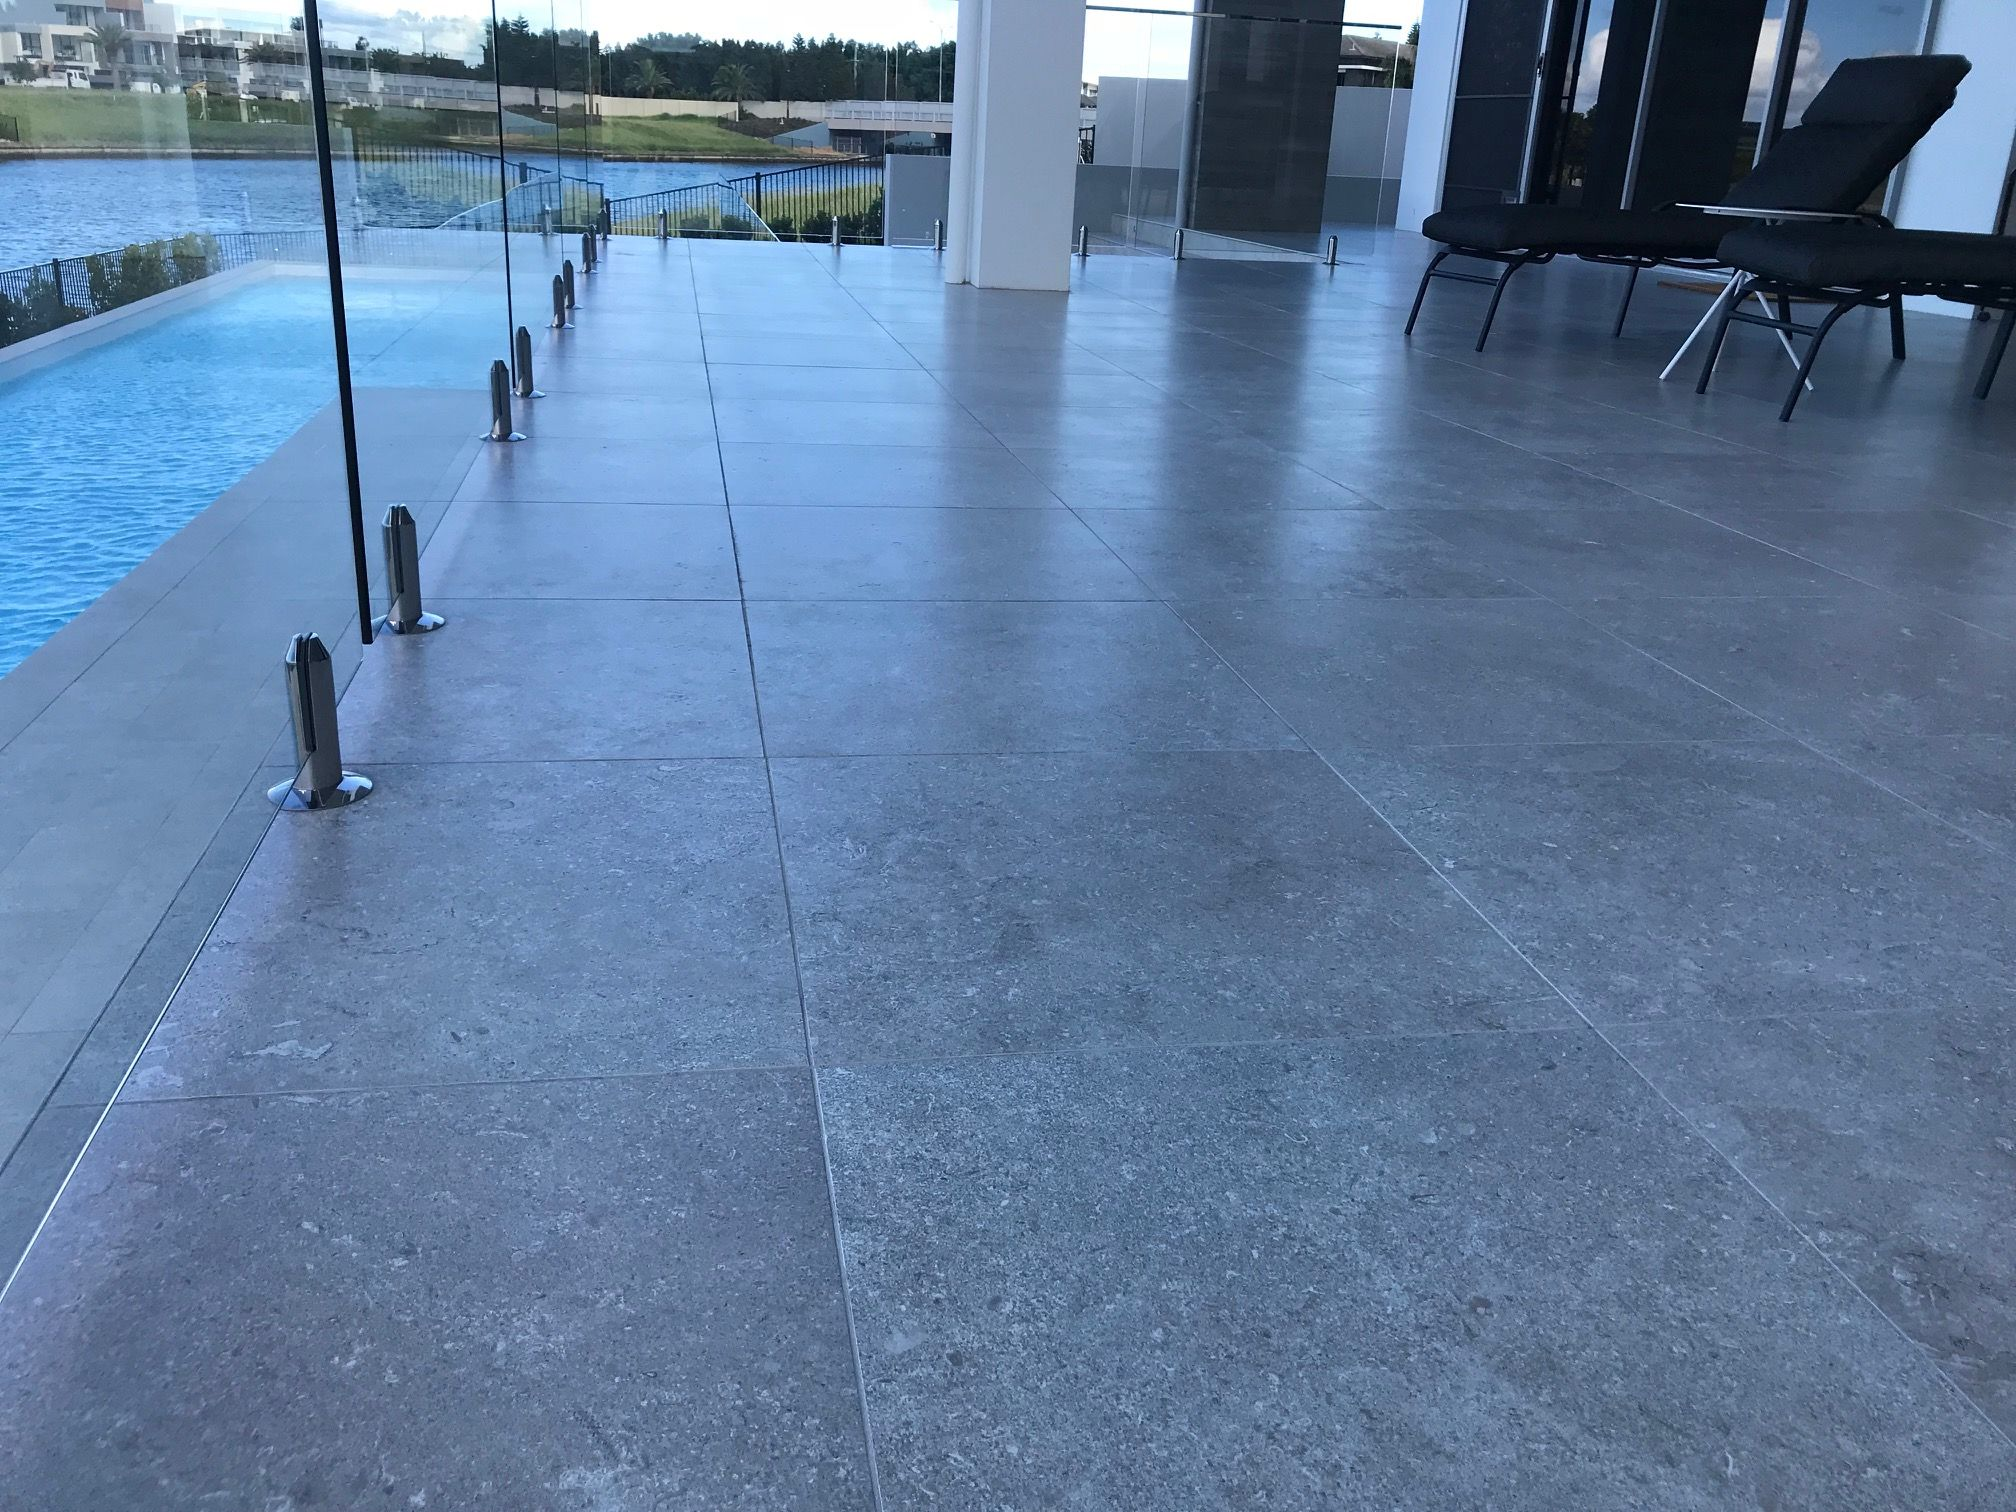 Concrete Look 450x900 Porcelain Tiles With Anti Slip Surface For This Luxury Water Front Poolside And Outdoor Modern Outdoor Industrial House Outdoor Flooring